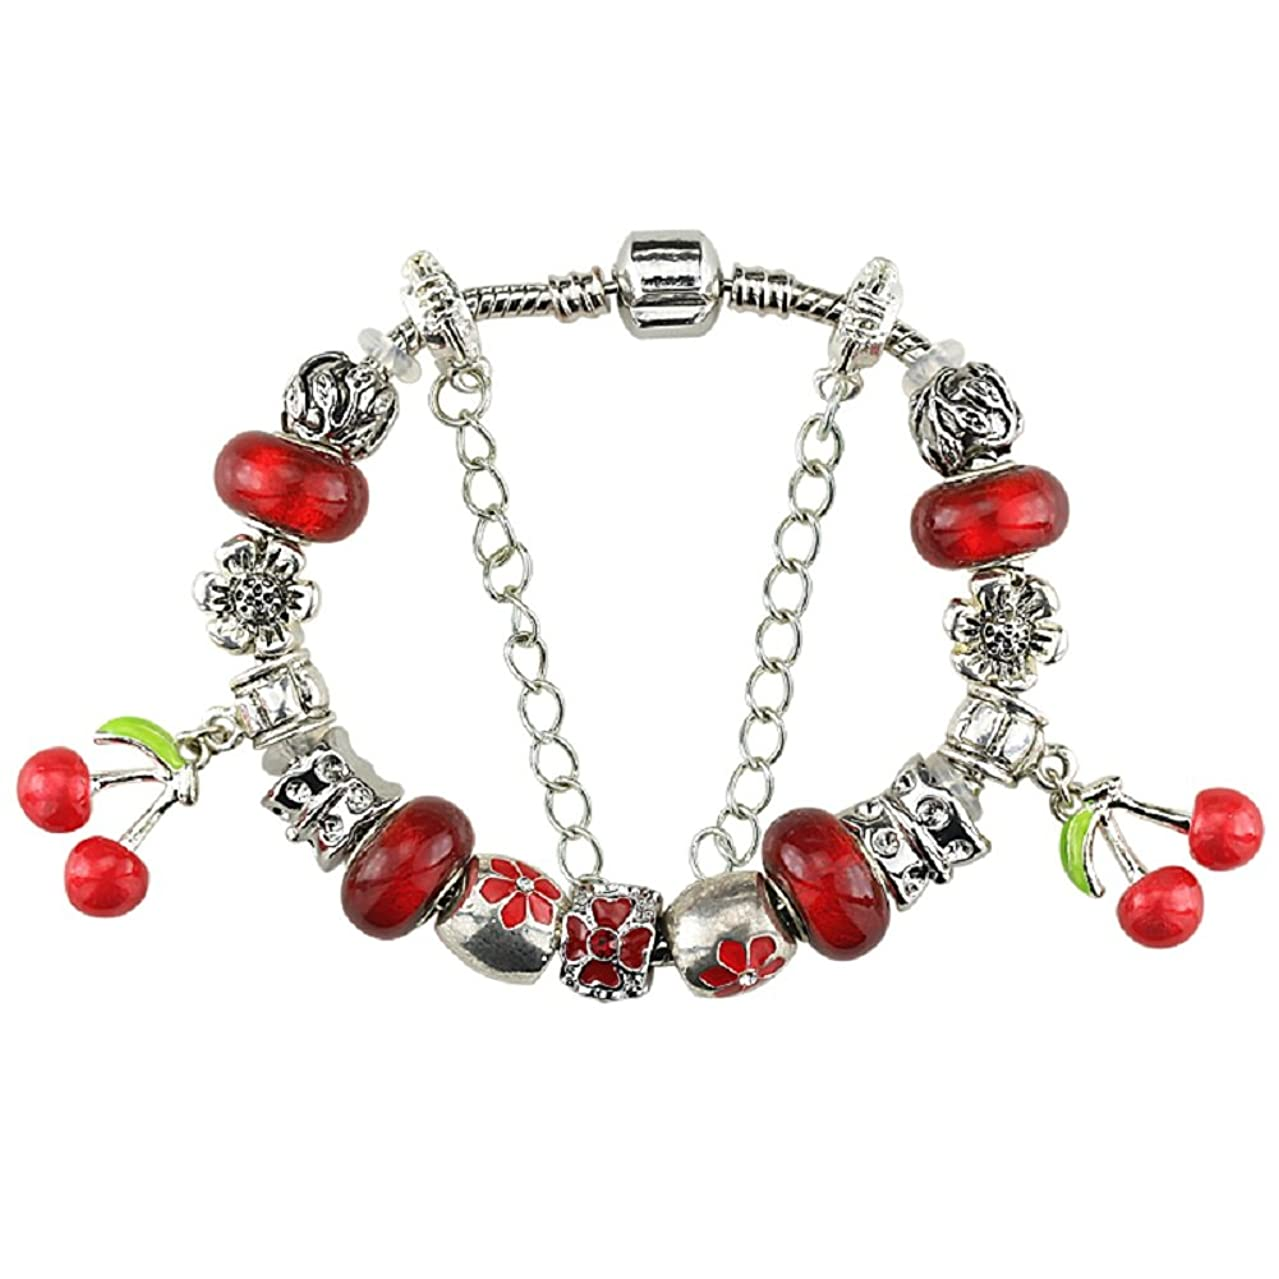 Duchy White Birch Charm Bracelets and Charm for Pandora for Women Silver Platedd Red Cherry